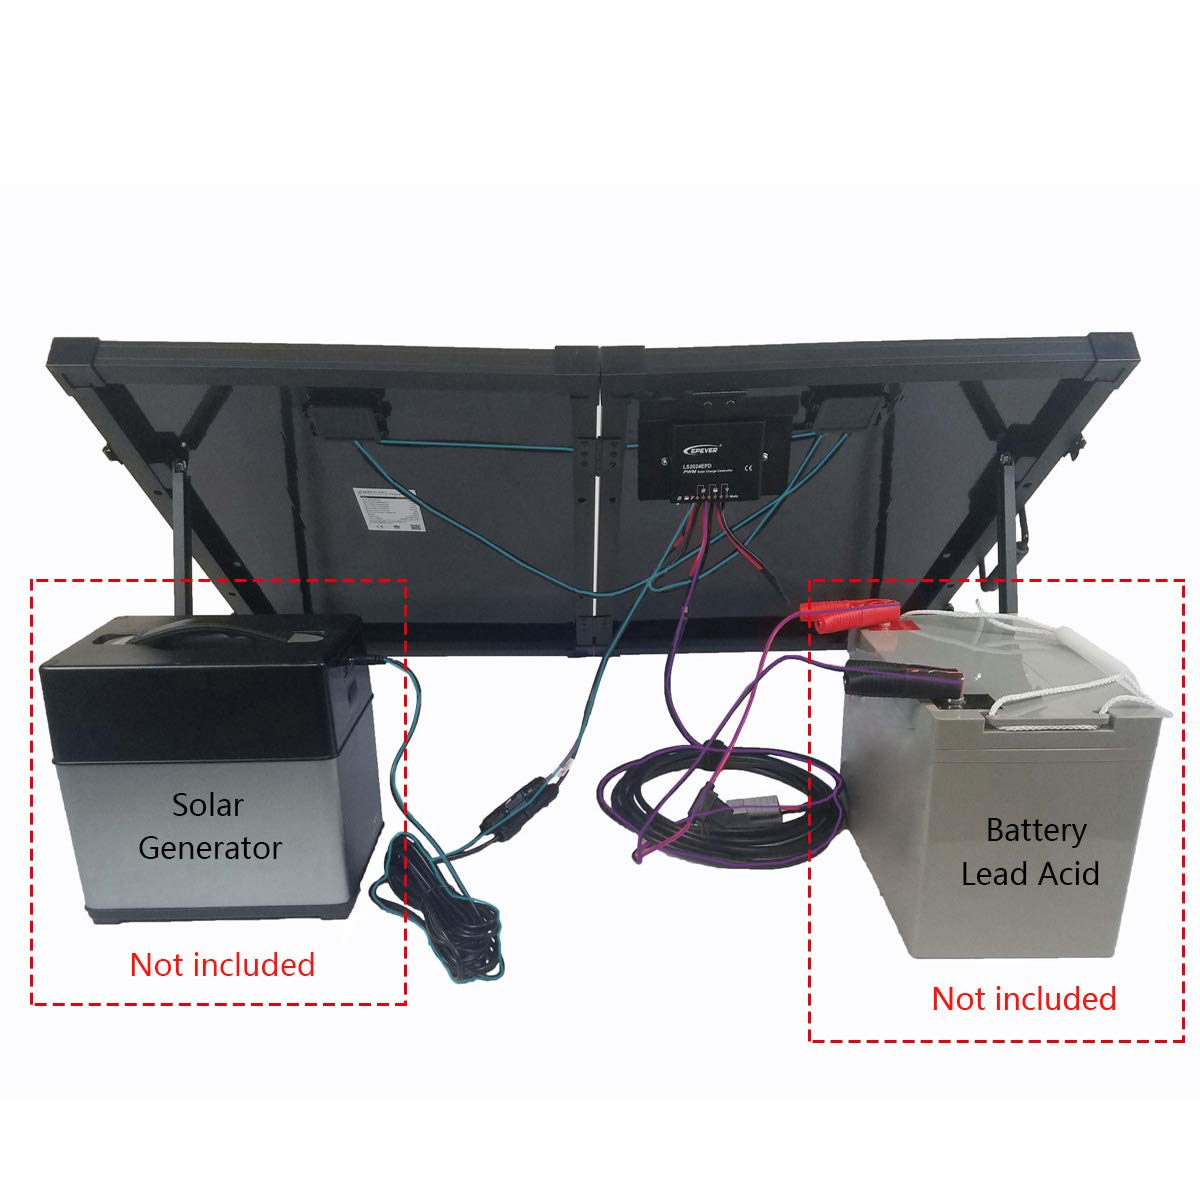 ACOPOWER 100W Portable Solar Panel Kit, Waterproof 20A Charge Controller for Both 12V Battery and Generator by ACOPOWER (Image #5)